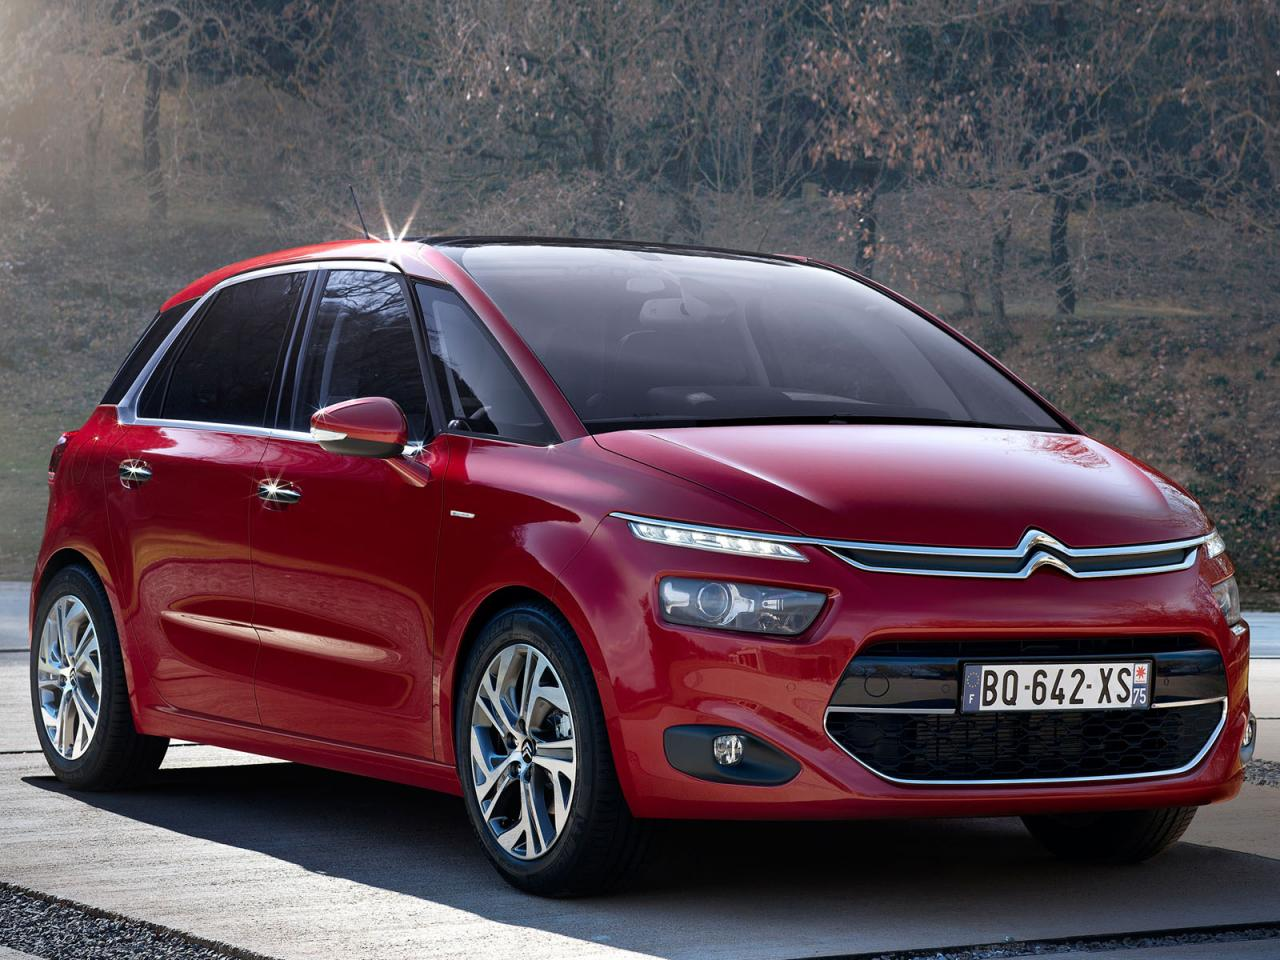 2013 citroen c4 picasso first official photos leaked. Black Bedroom Furniture Sets. Home Design Ideas